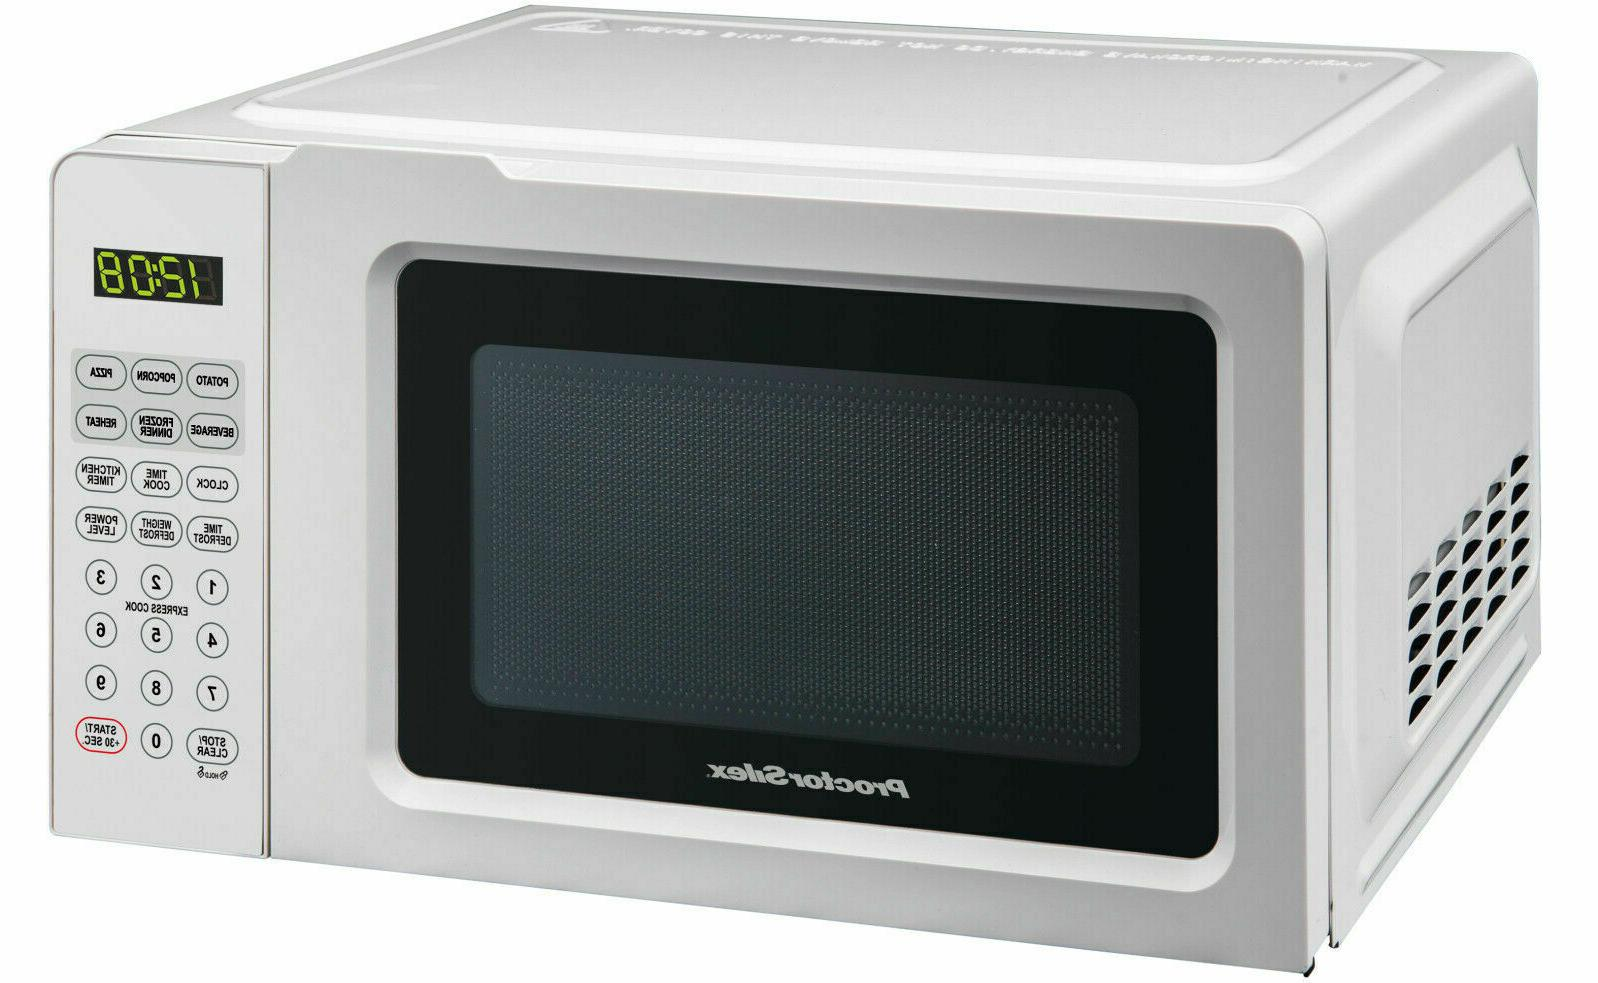 Digital Kitchen Countertop Microwave Oven Cooking Food Home